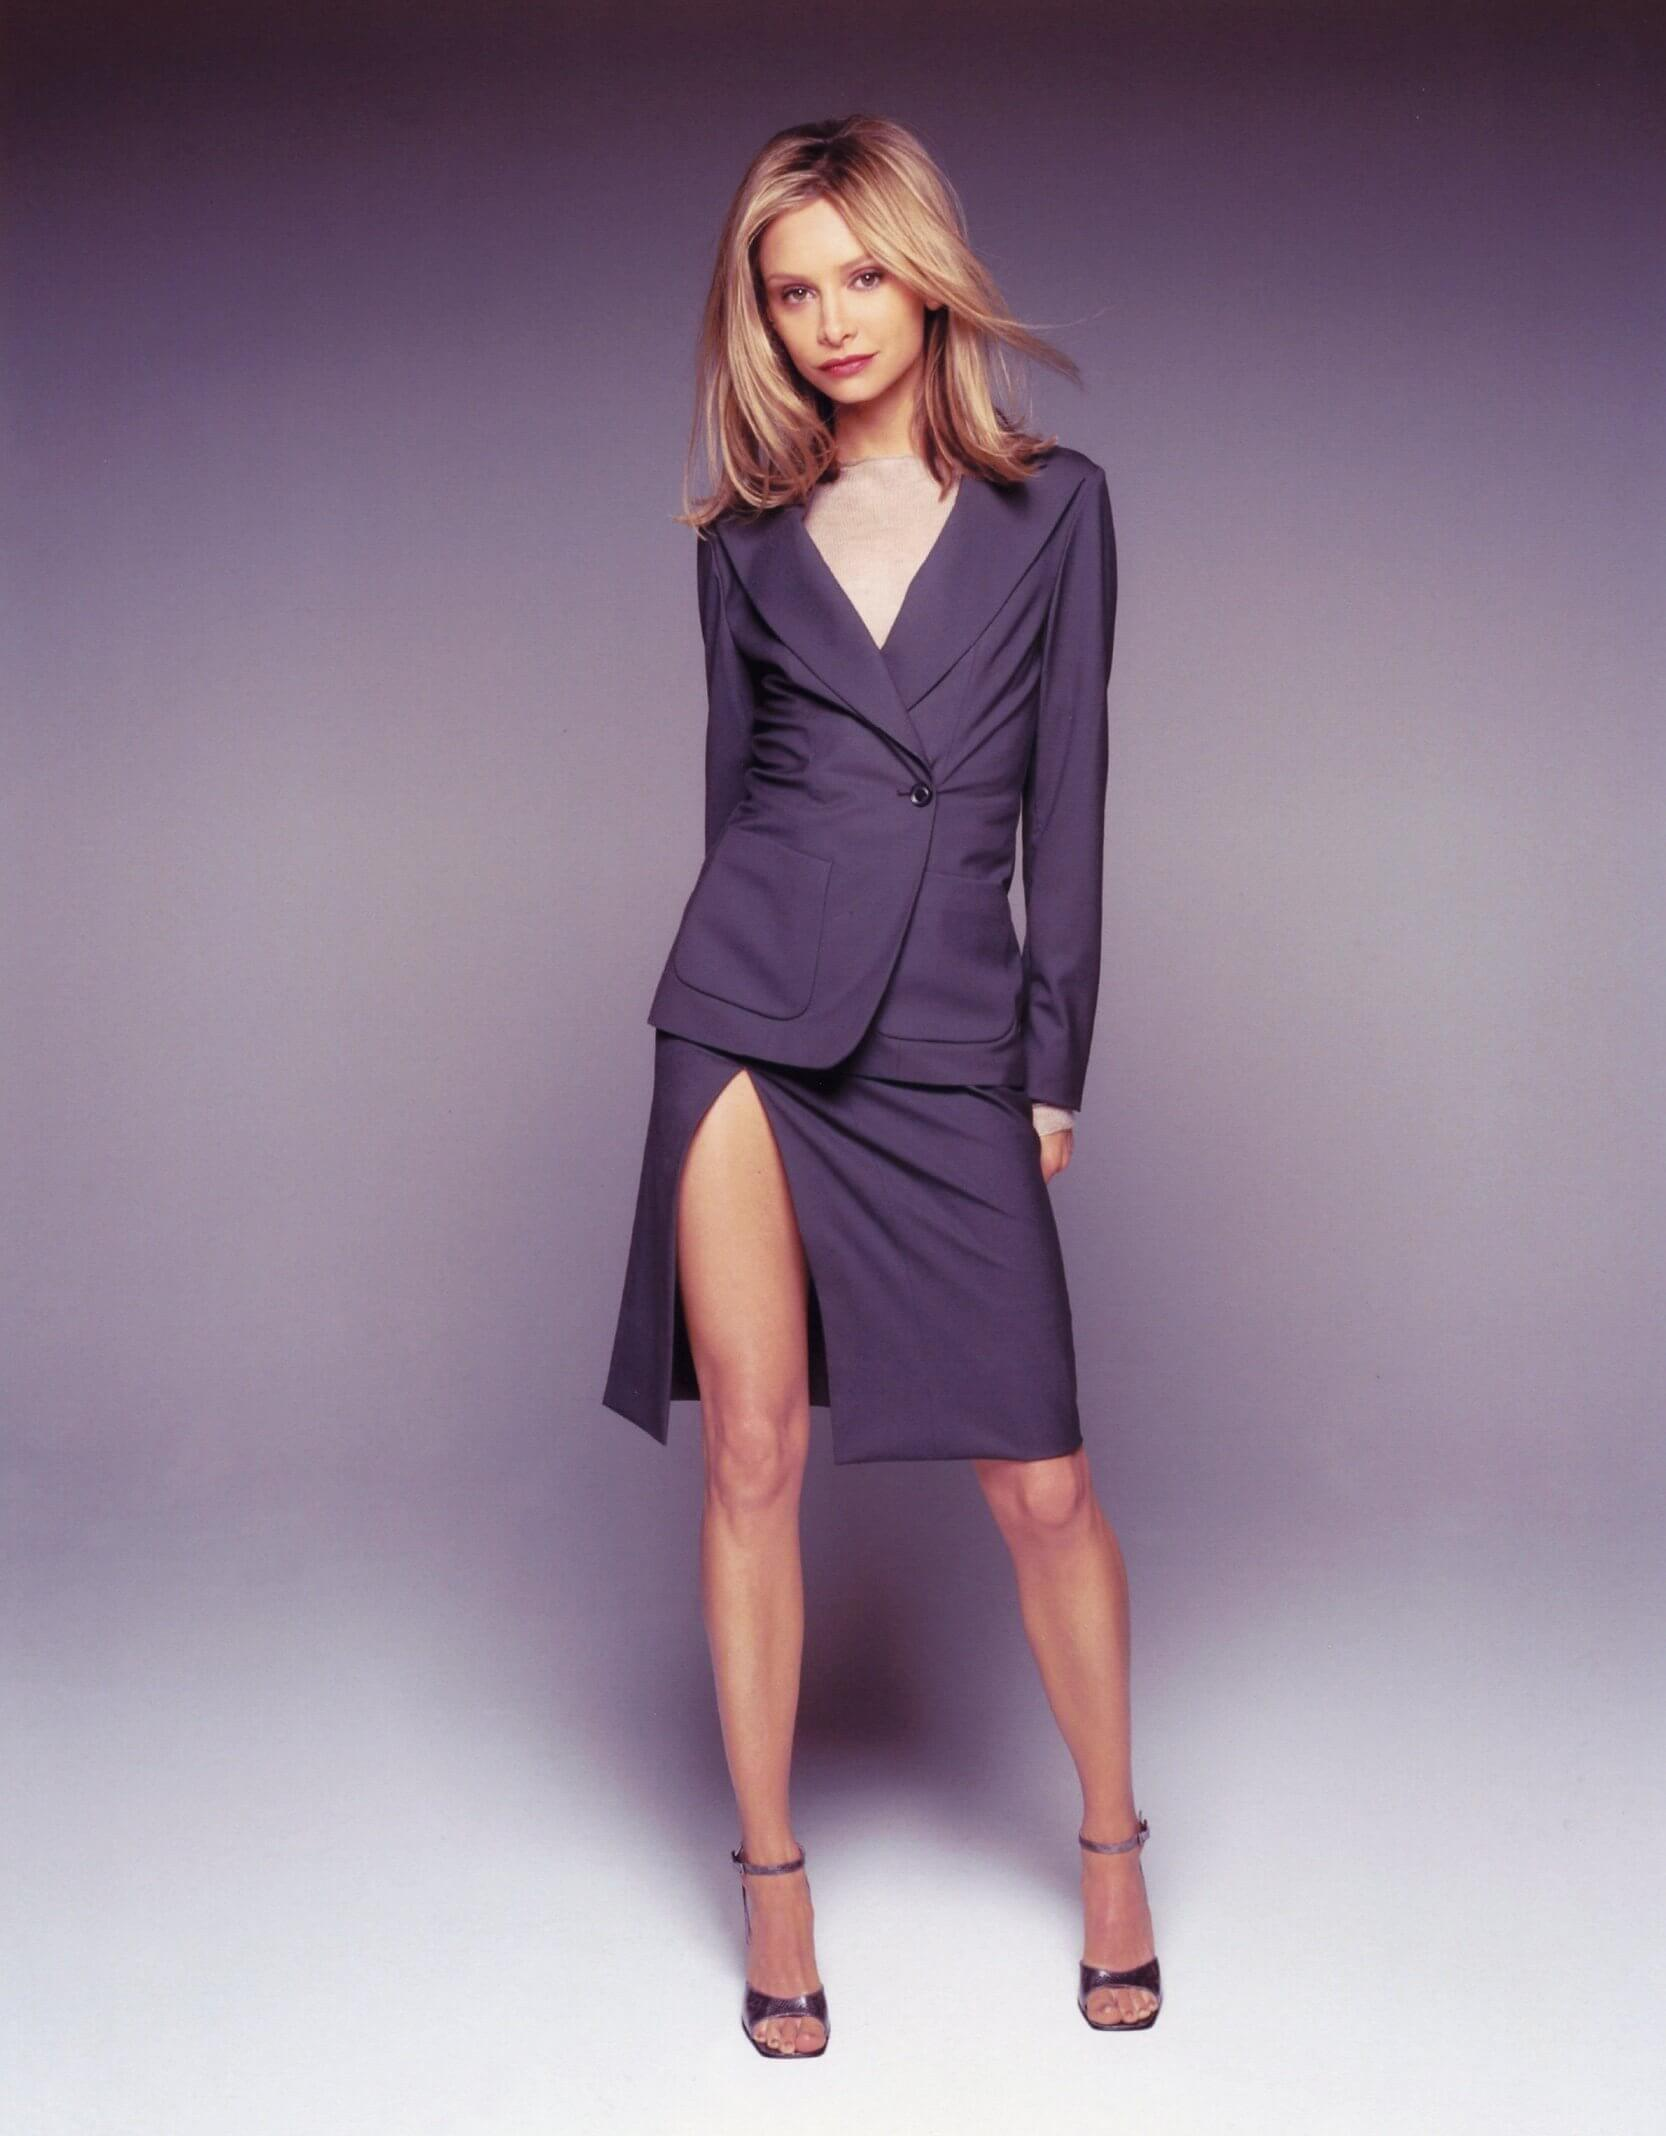 Calista Flockhart feet sexy